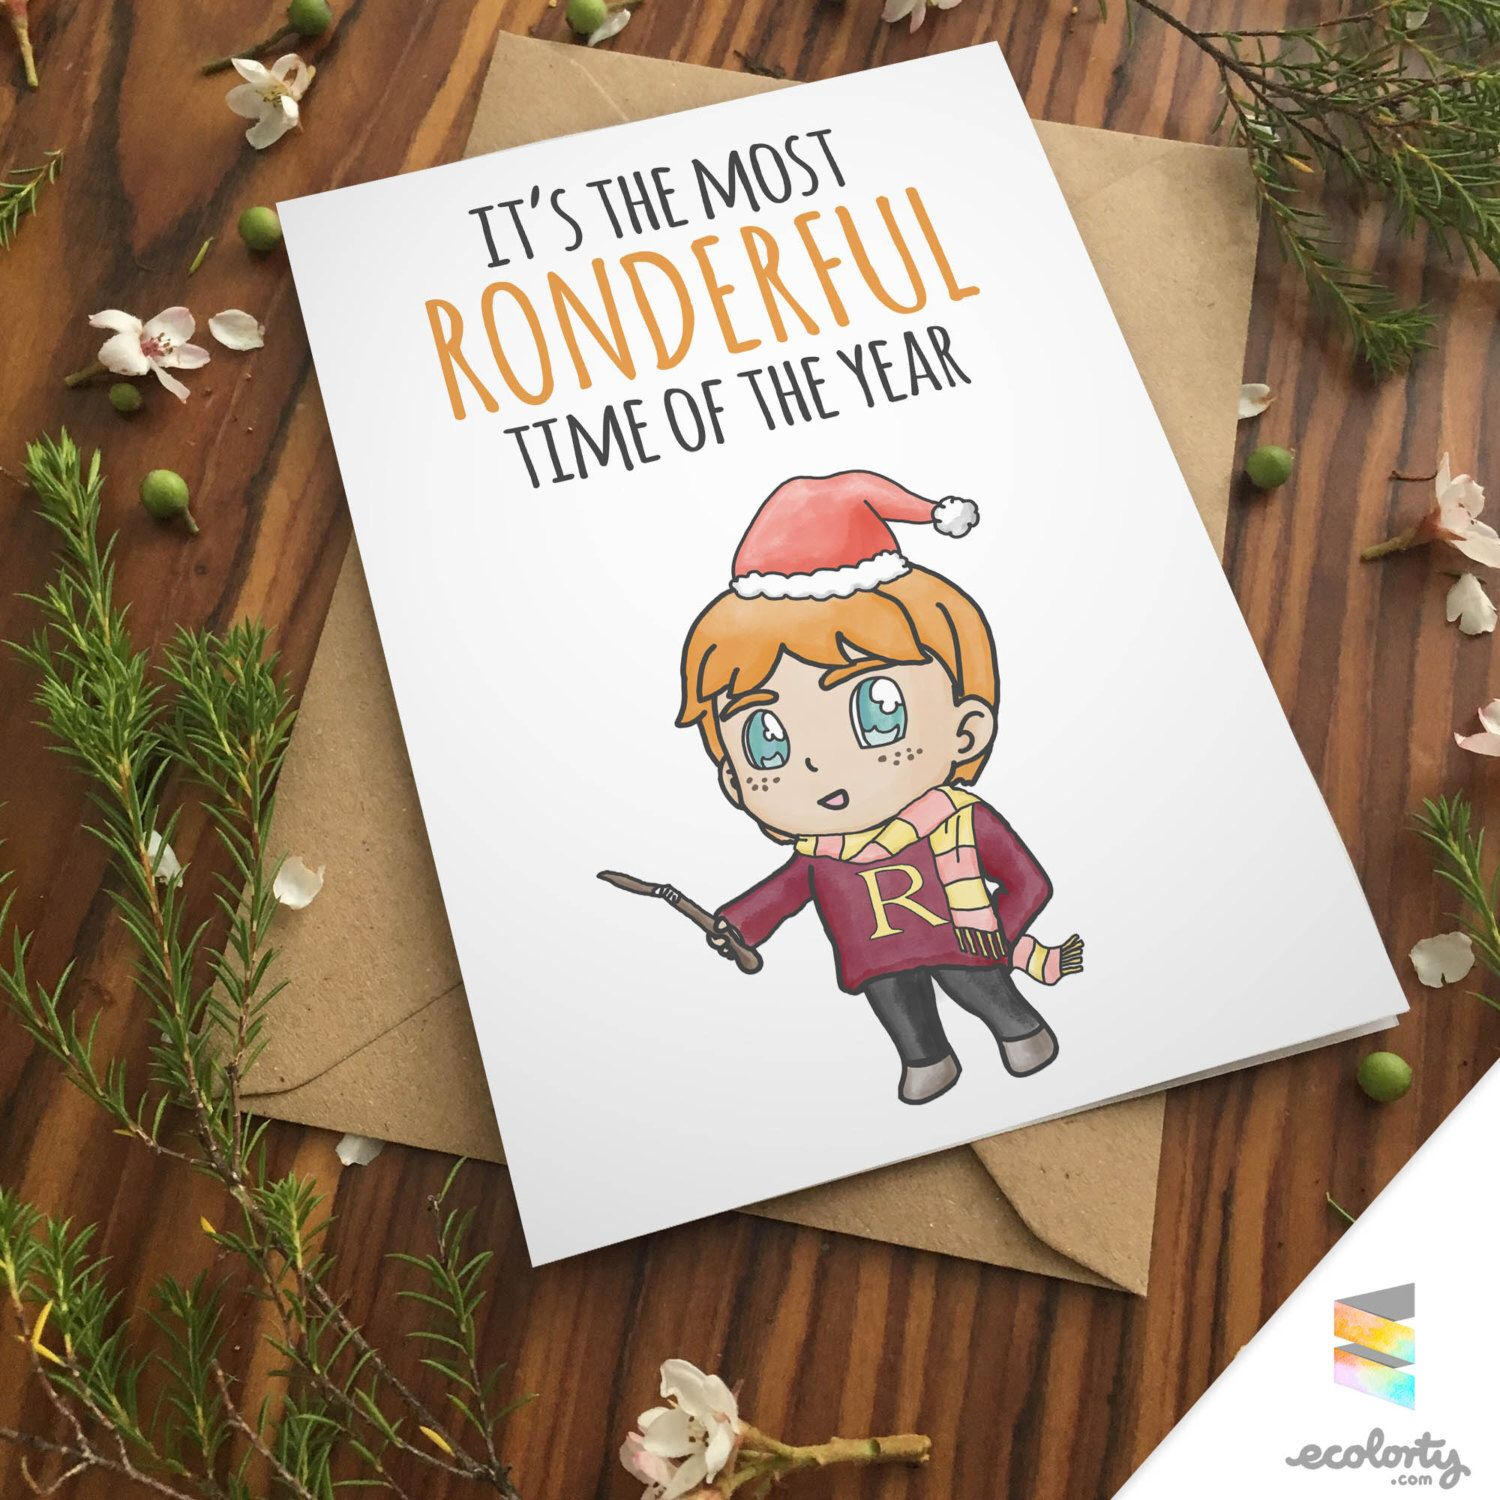 Ron weasley birthday card choice image birthday cards ideas ron weasley birthday card images birthday cards ideas weasley birthday card awesome harry potter things on bookmarktalkfo Image collections